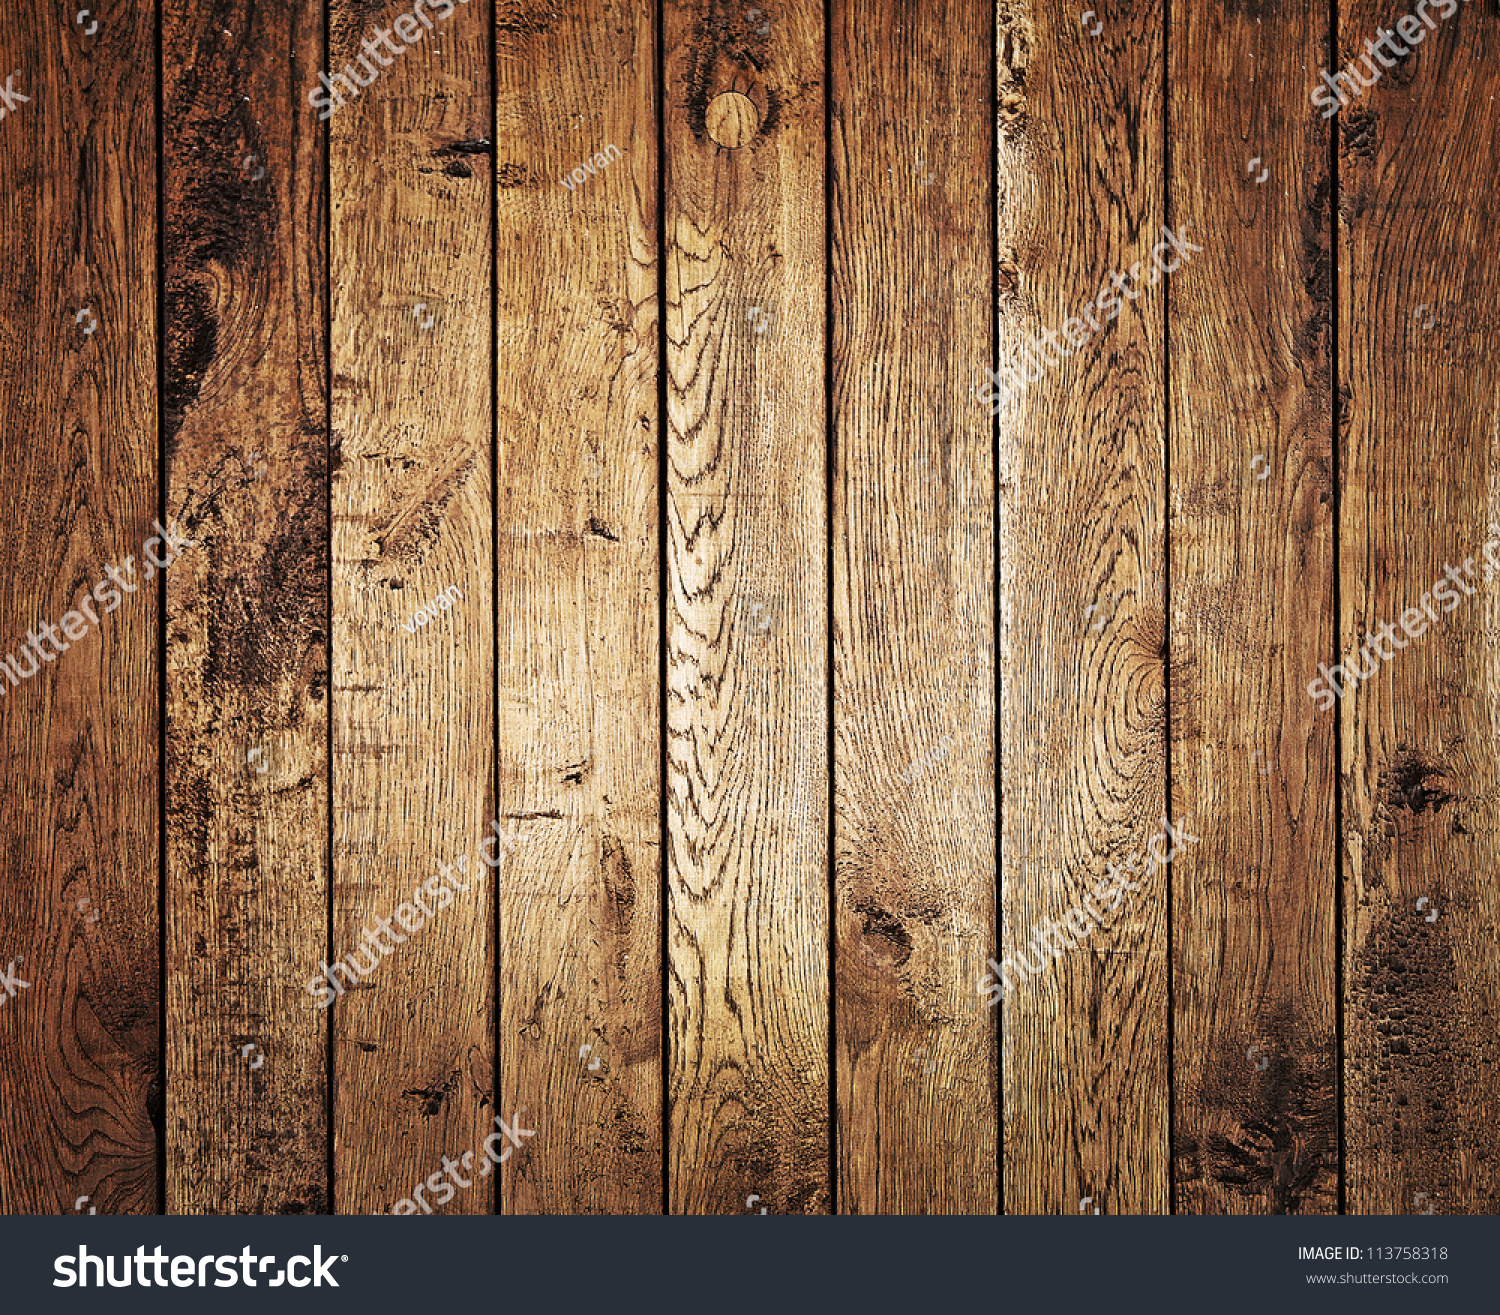 Very Impressive portraiture of Wood Texture. Background Old Panels Stock Photo 113758318  with #976F34 color and 1500x1314 pixels